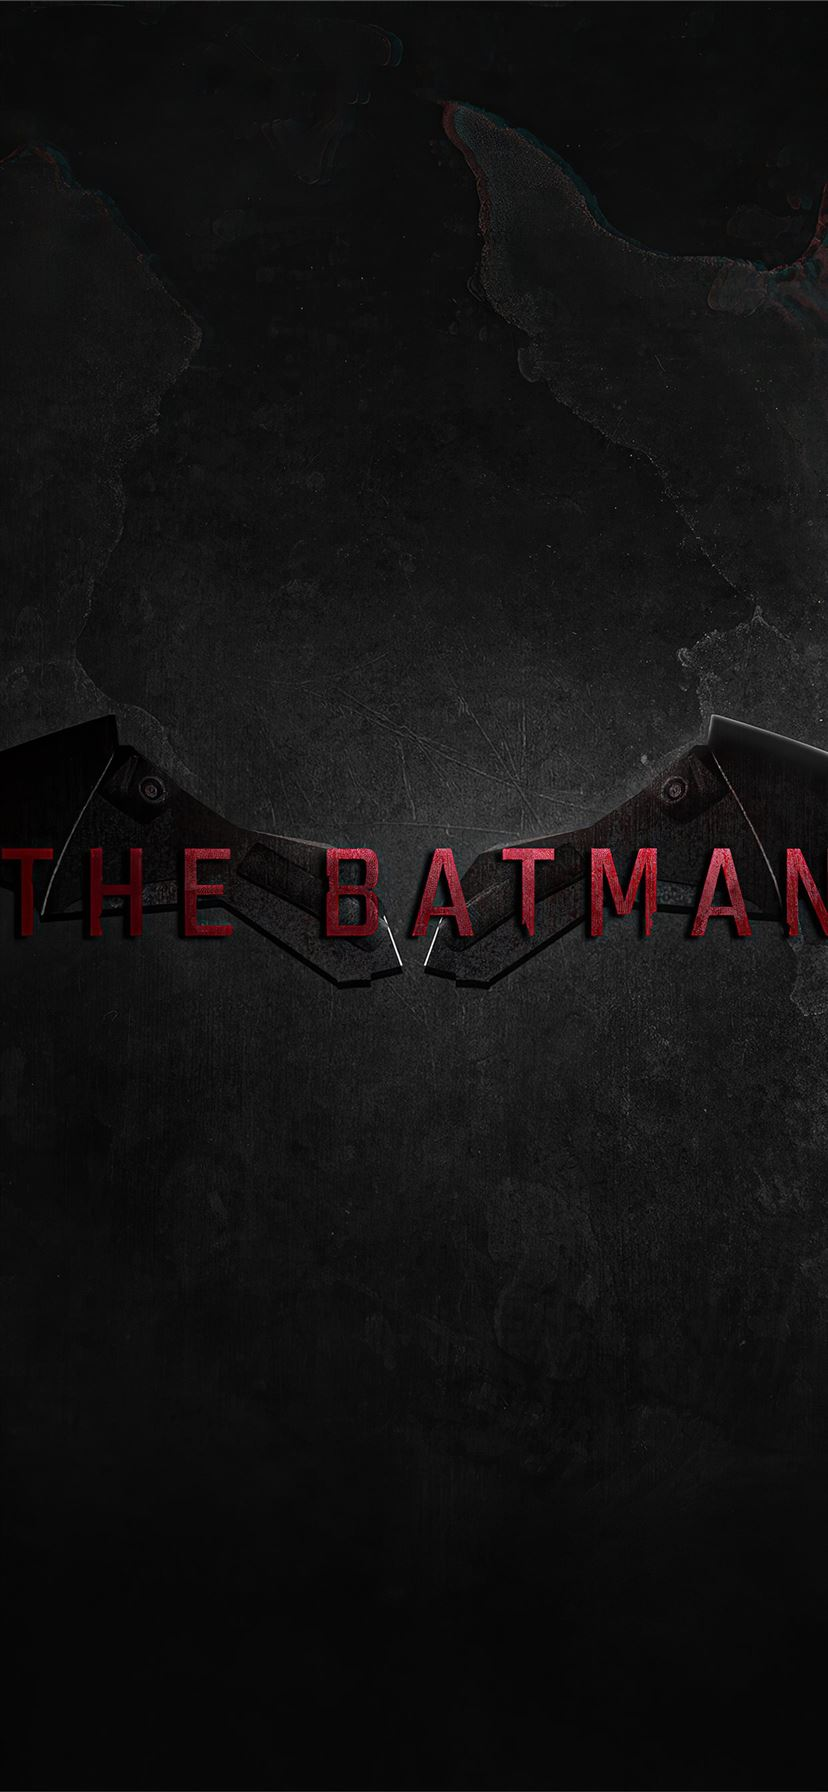 The Batman Movie Logo 4k Iphone Wallpapers Free Download